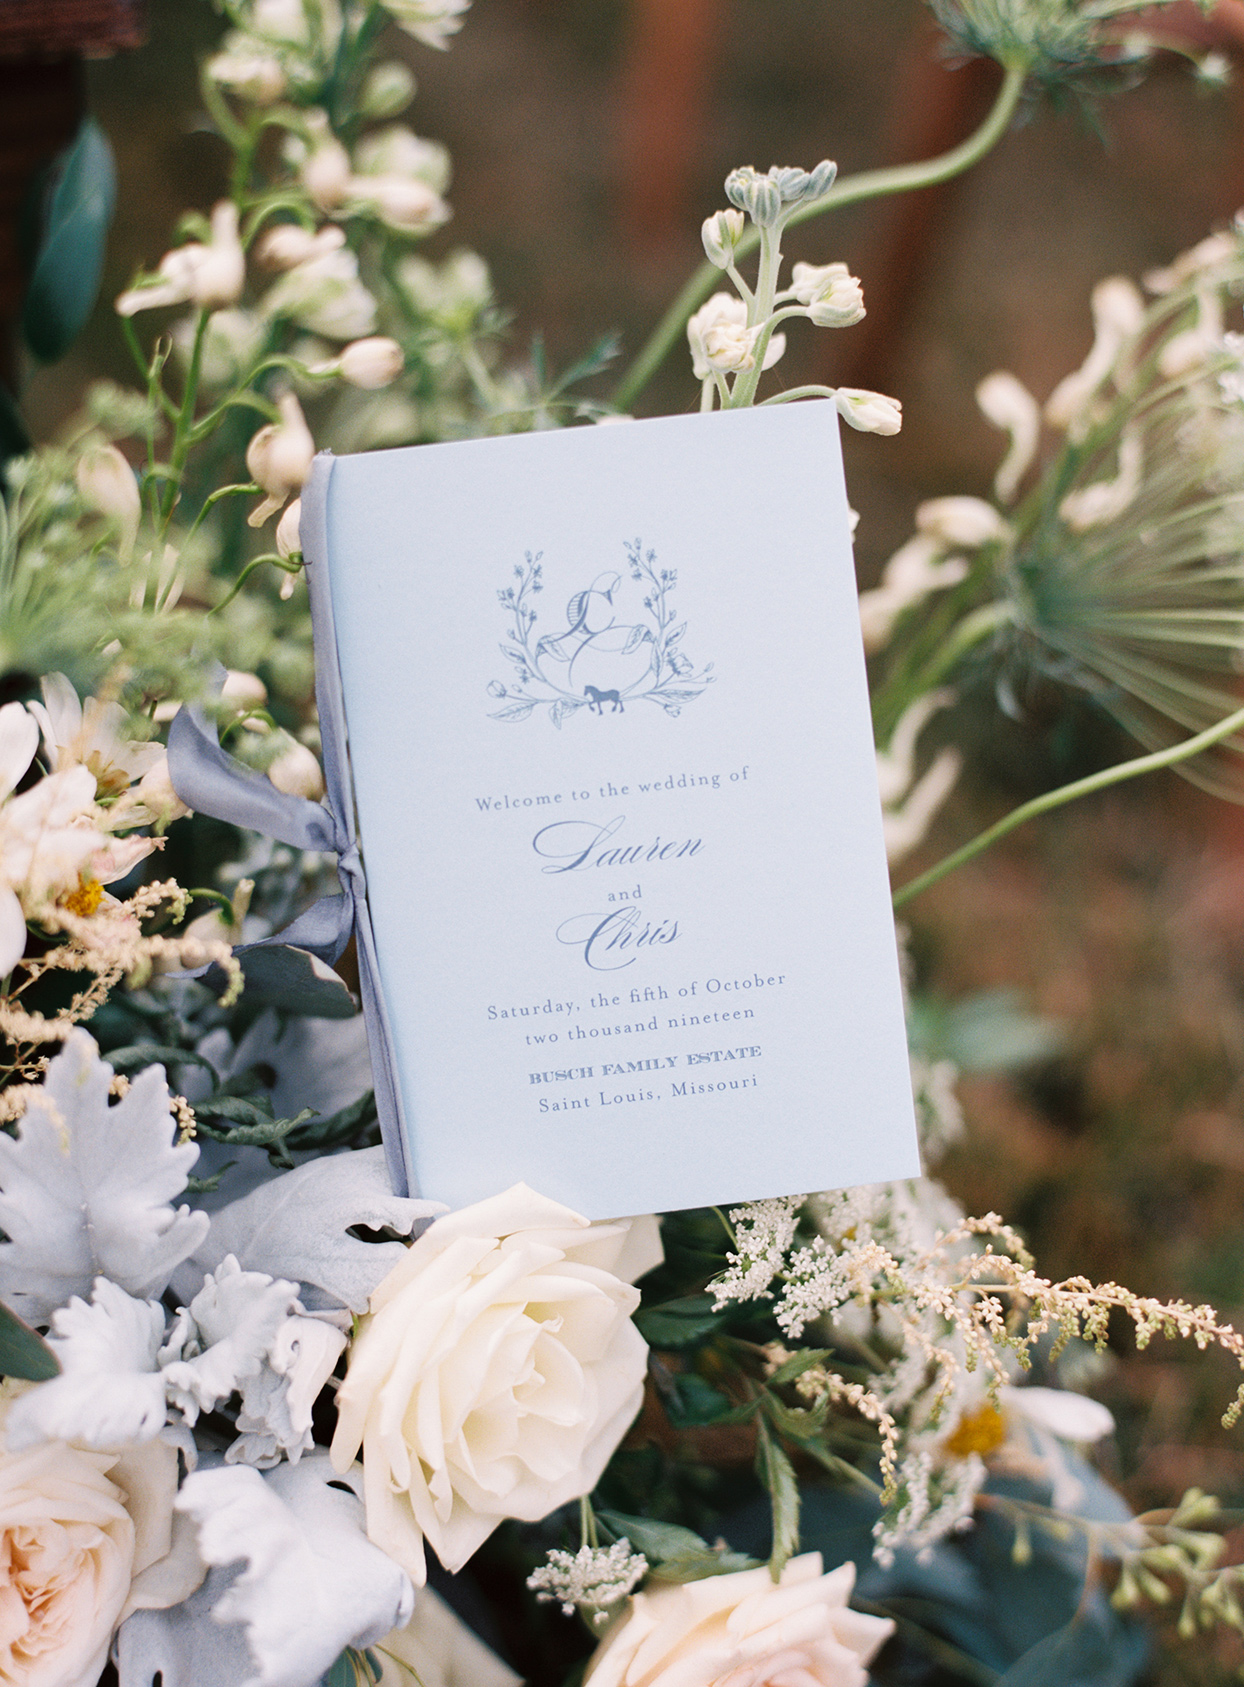 lauren chris wedding pastel blue ceremony program